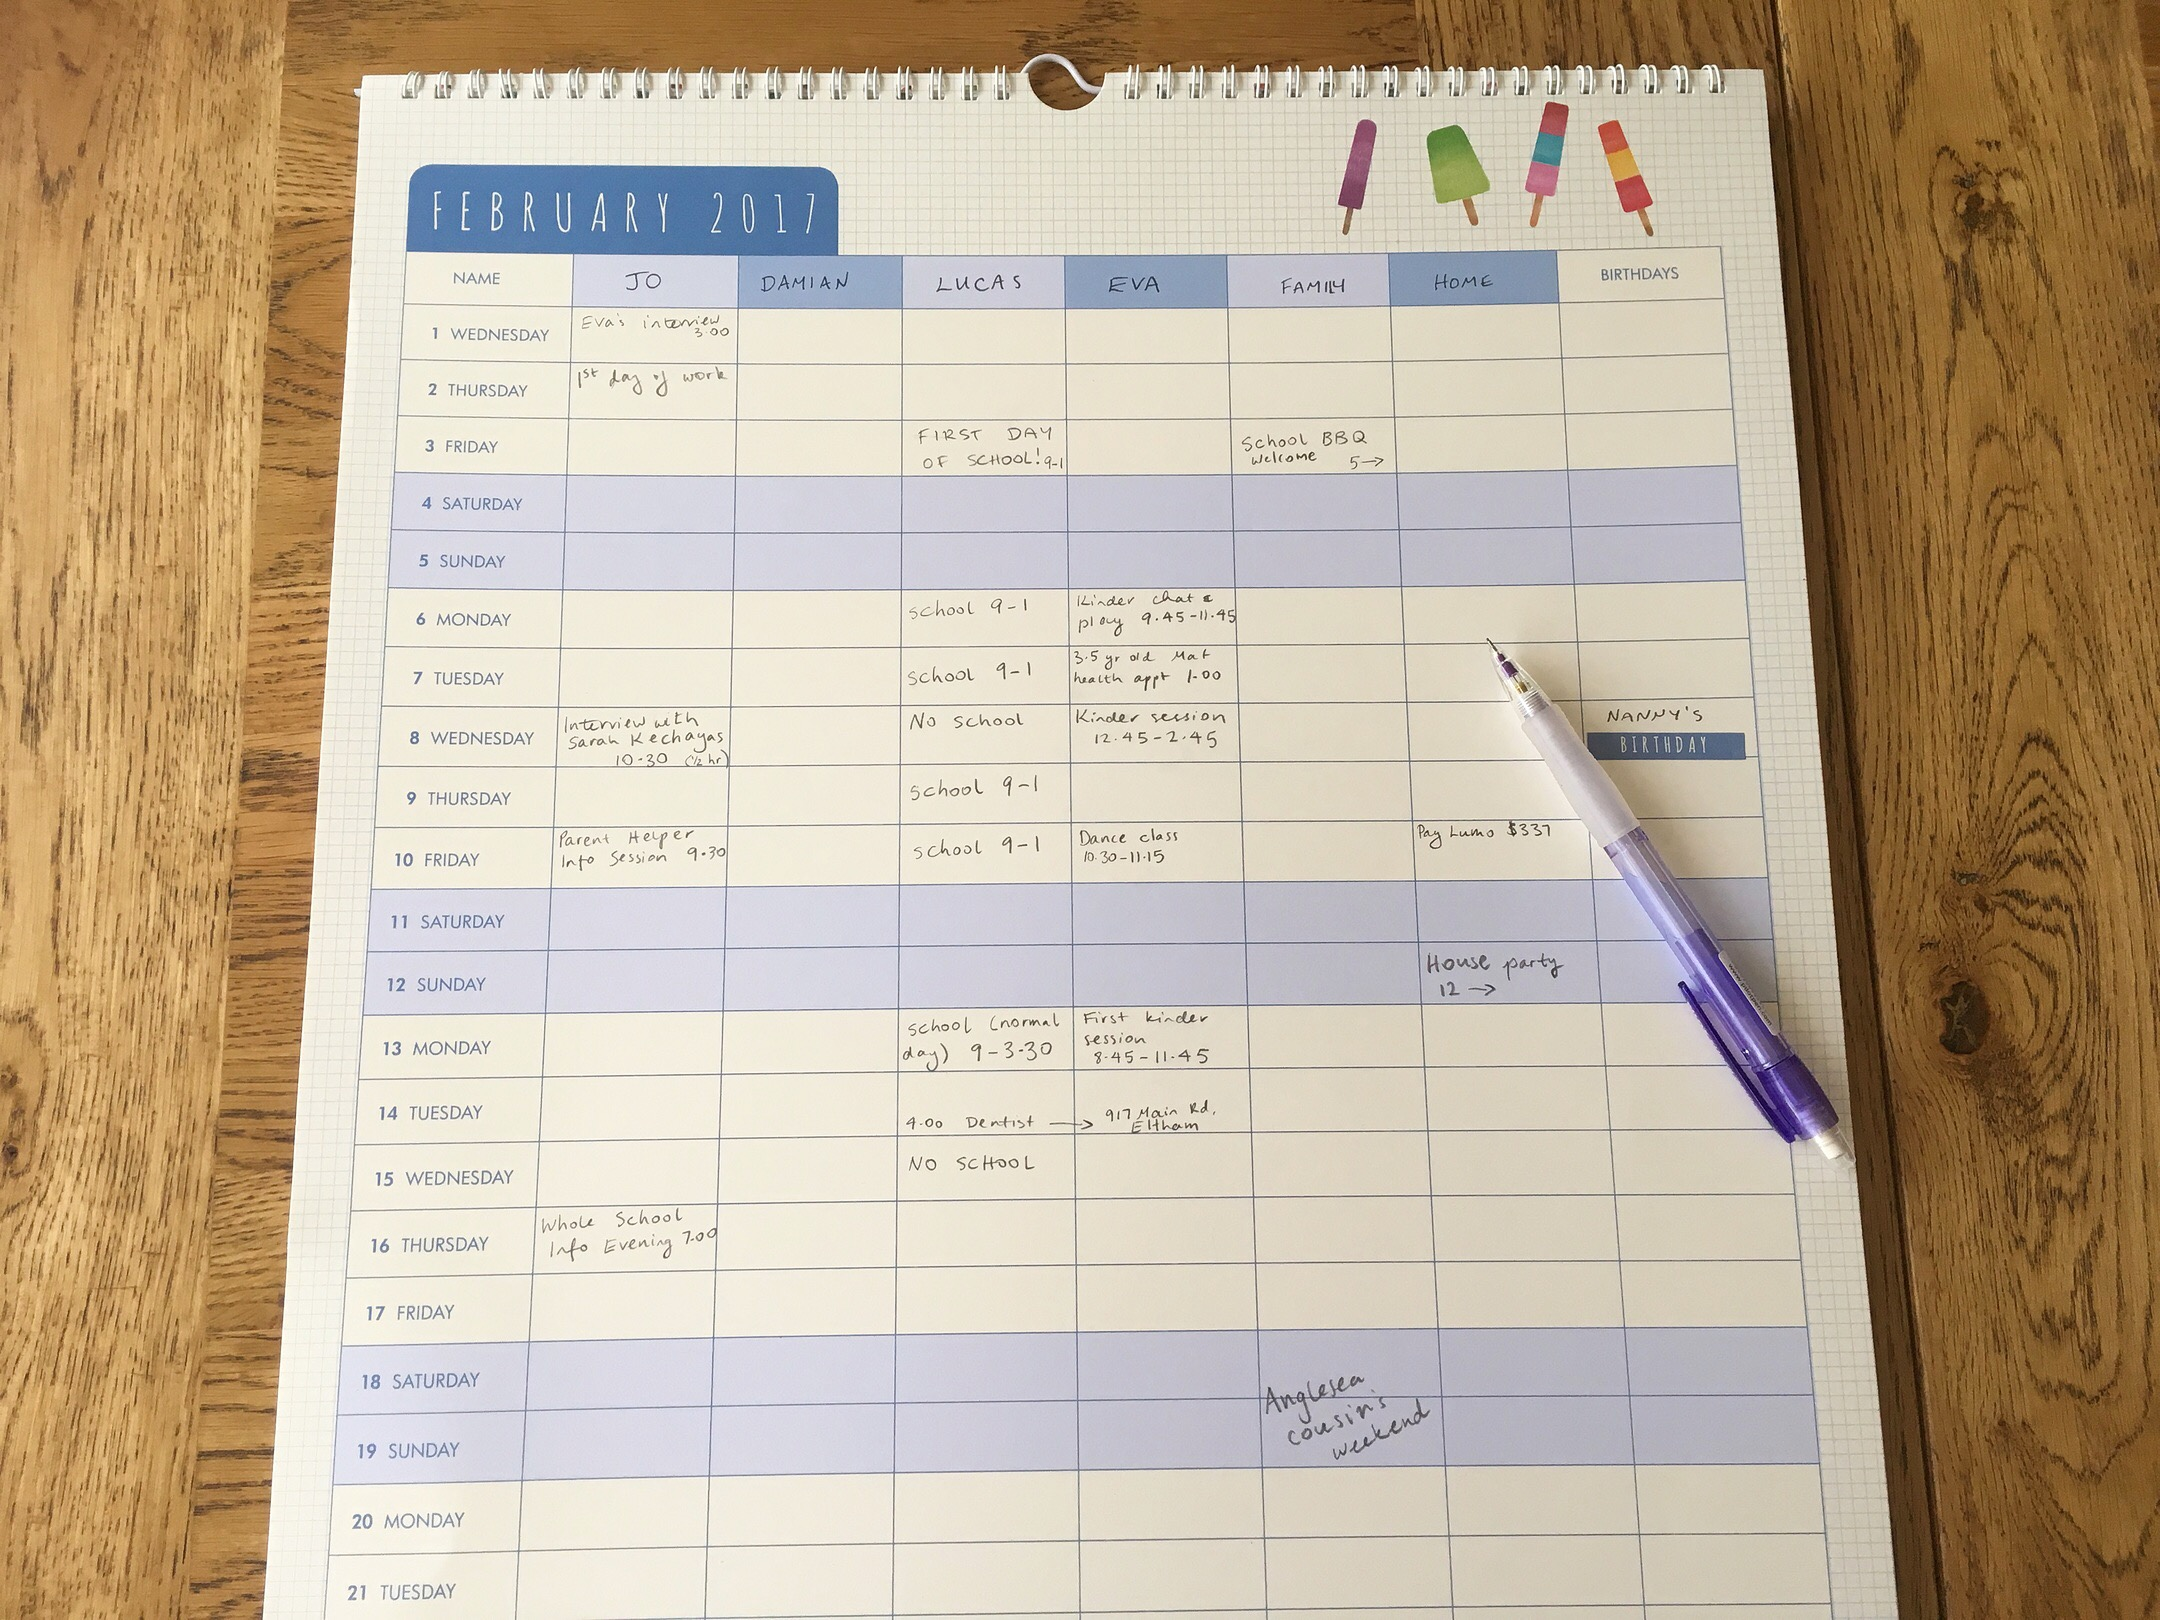 A family calendar with a designated column for each family member allows you to see at a glance what's on for everyone, and stay on top of changes in schedules